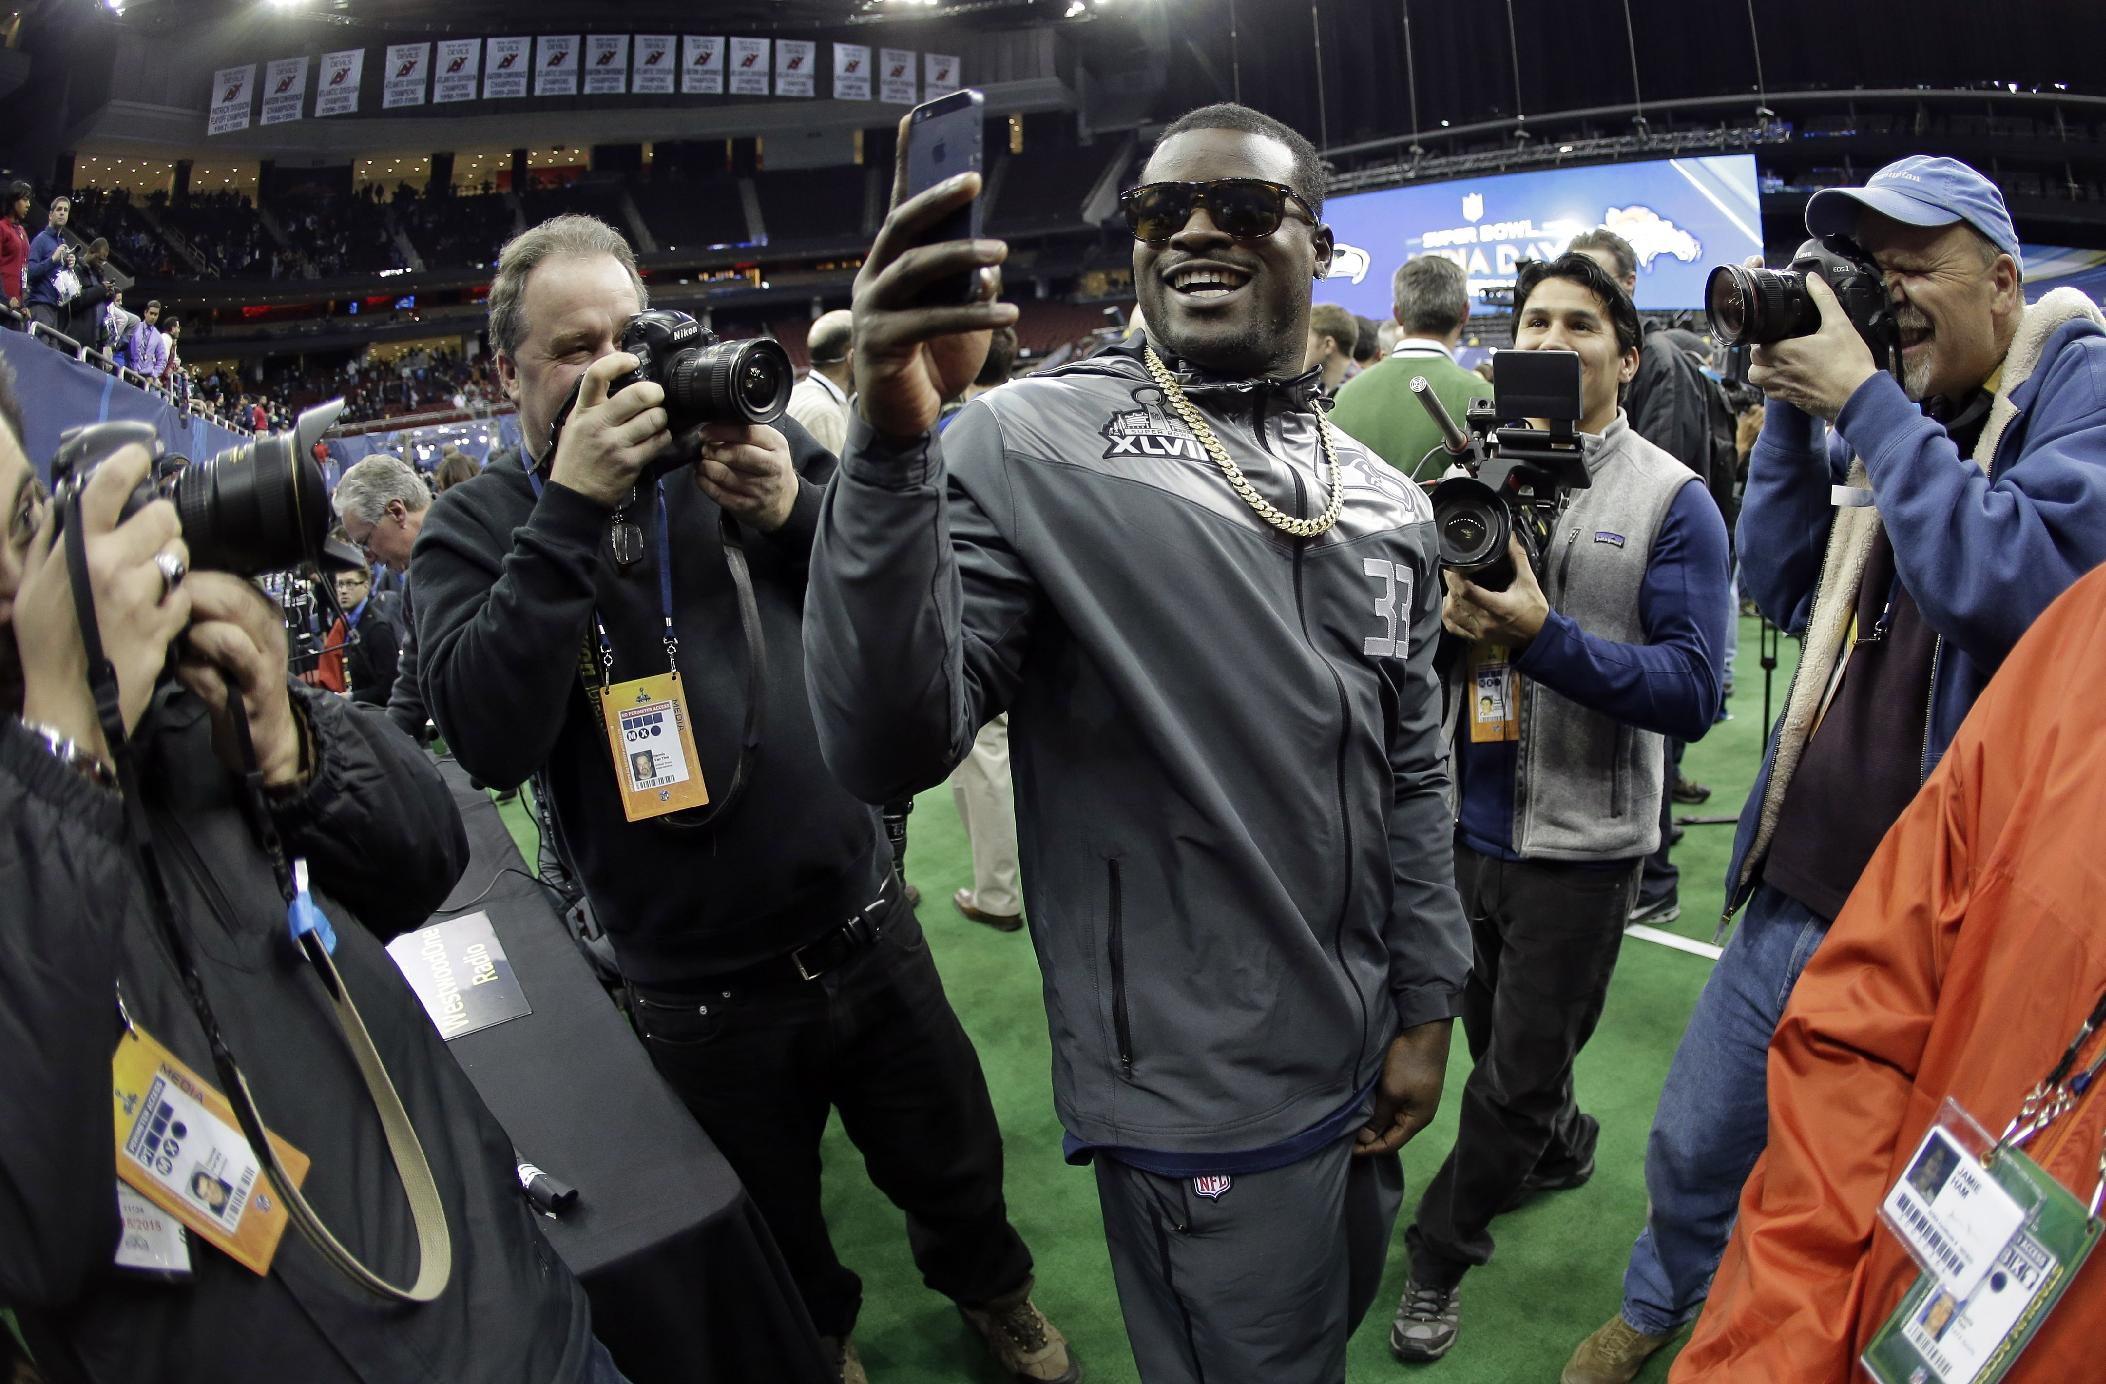 Seattle Seahawks' Christine Michael takes pictures during media day for the NFL Super Bowl XLVIII football game Tuesday, Jan. 28, 2014, in Newark, N.J